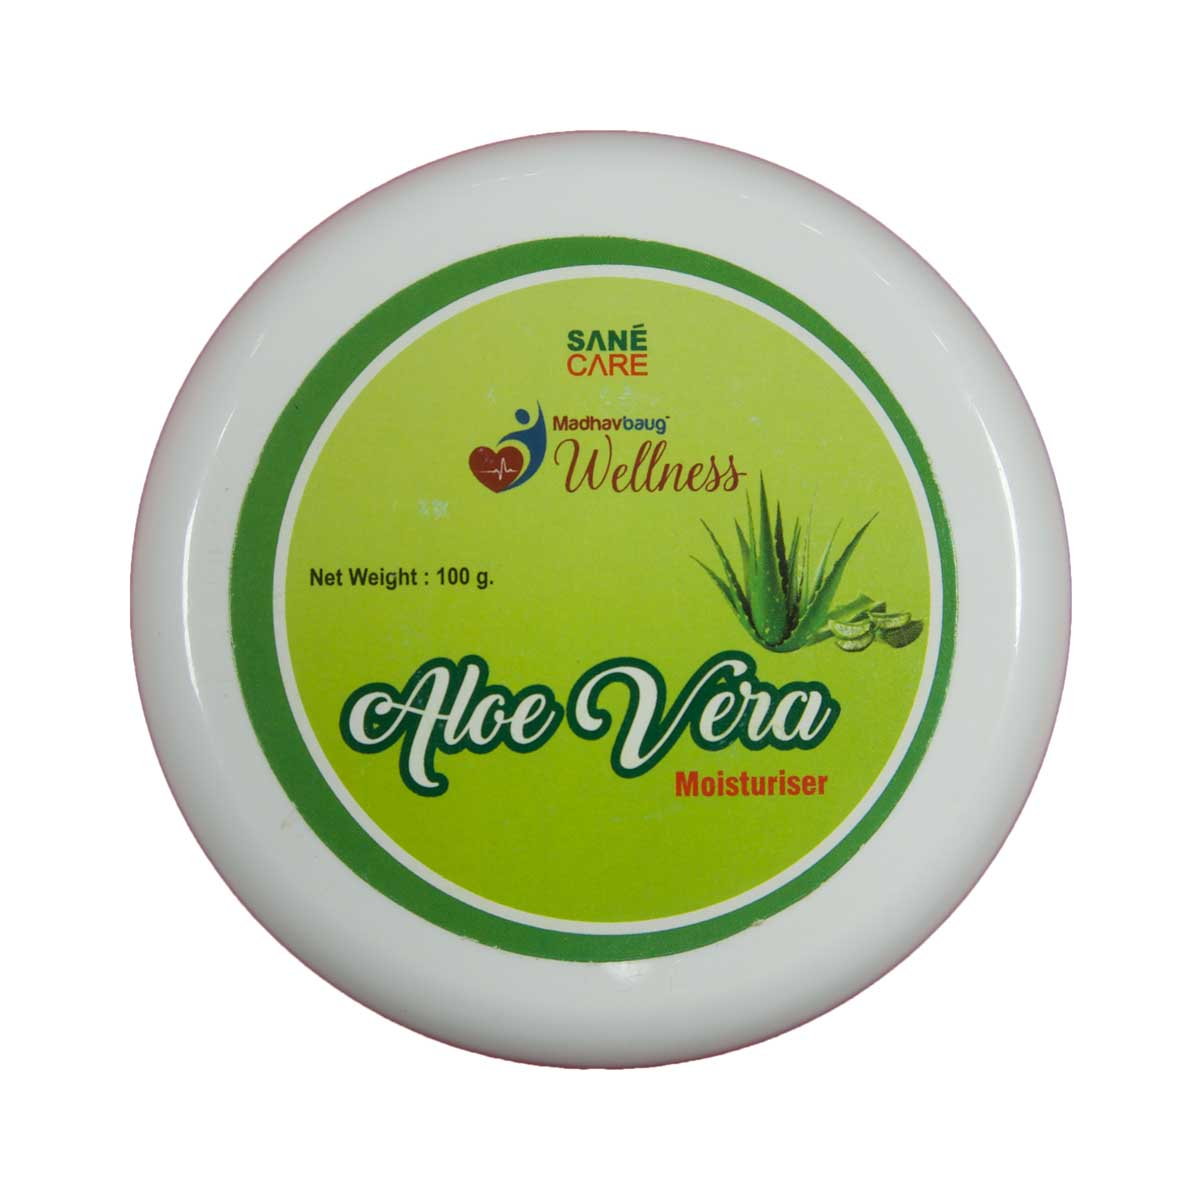 Sane Care Pearly Aloe Vera Moisturiser